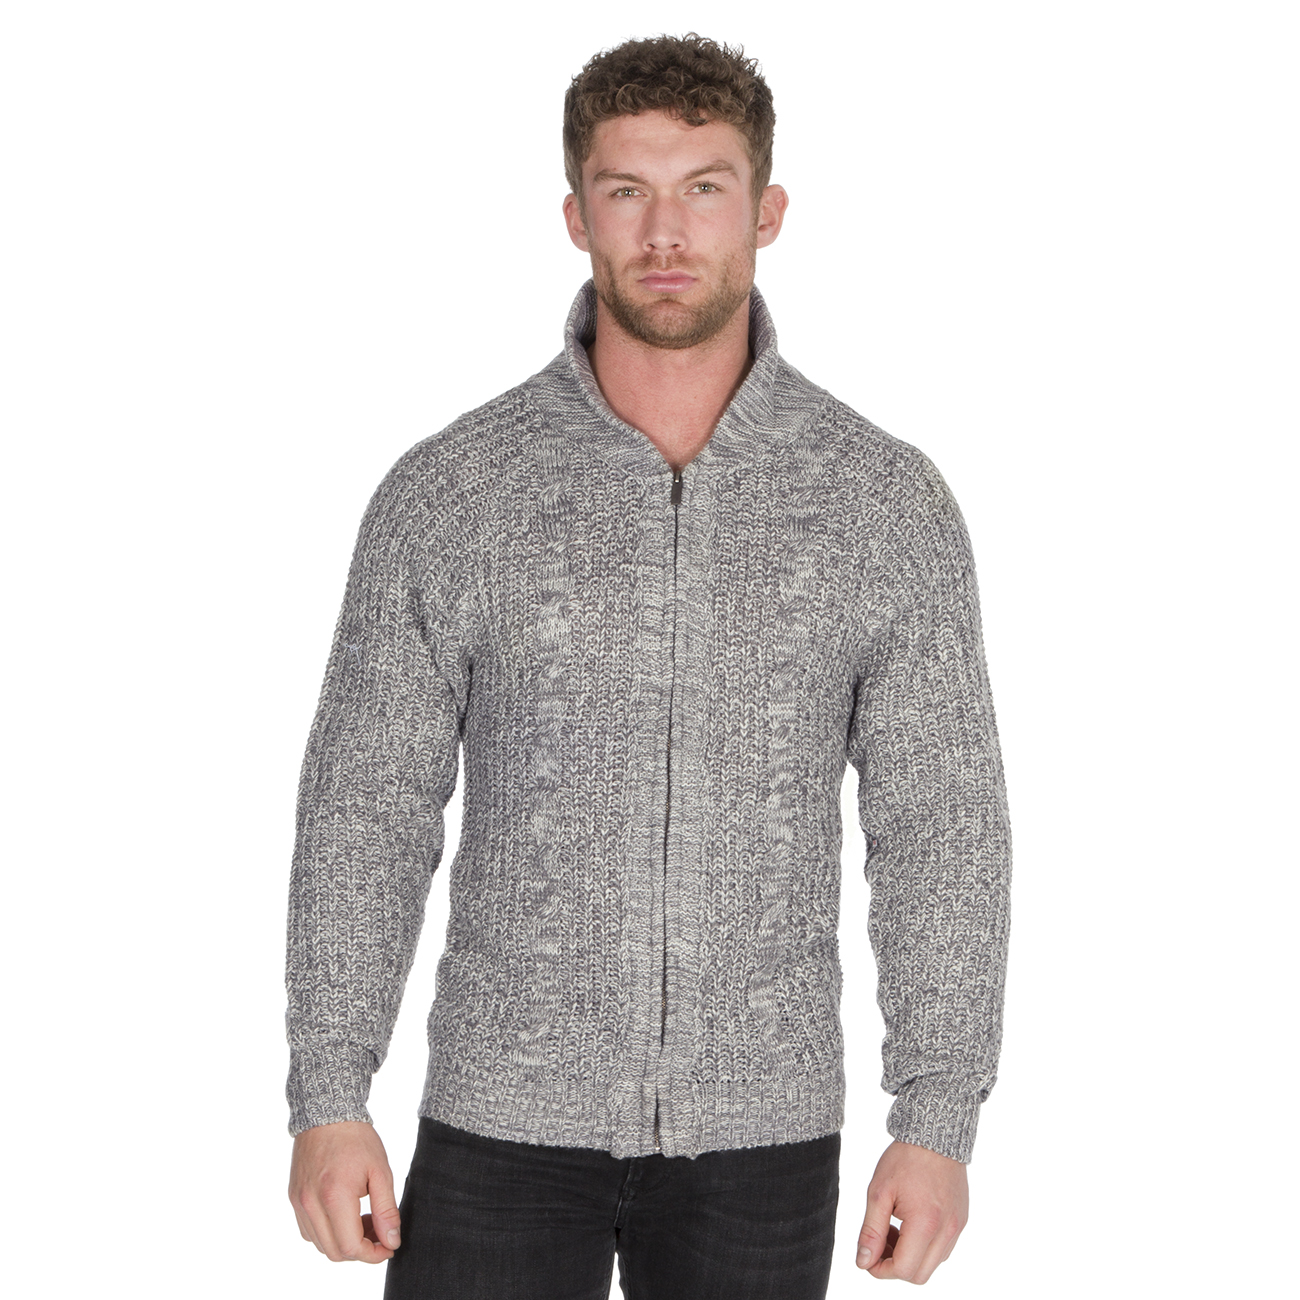 Homme-Zip-Cardigan-Gris-Bleu-marine-Full-Zip-Up-Stand-collier-cable-tricot-pull-UK miniature 3